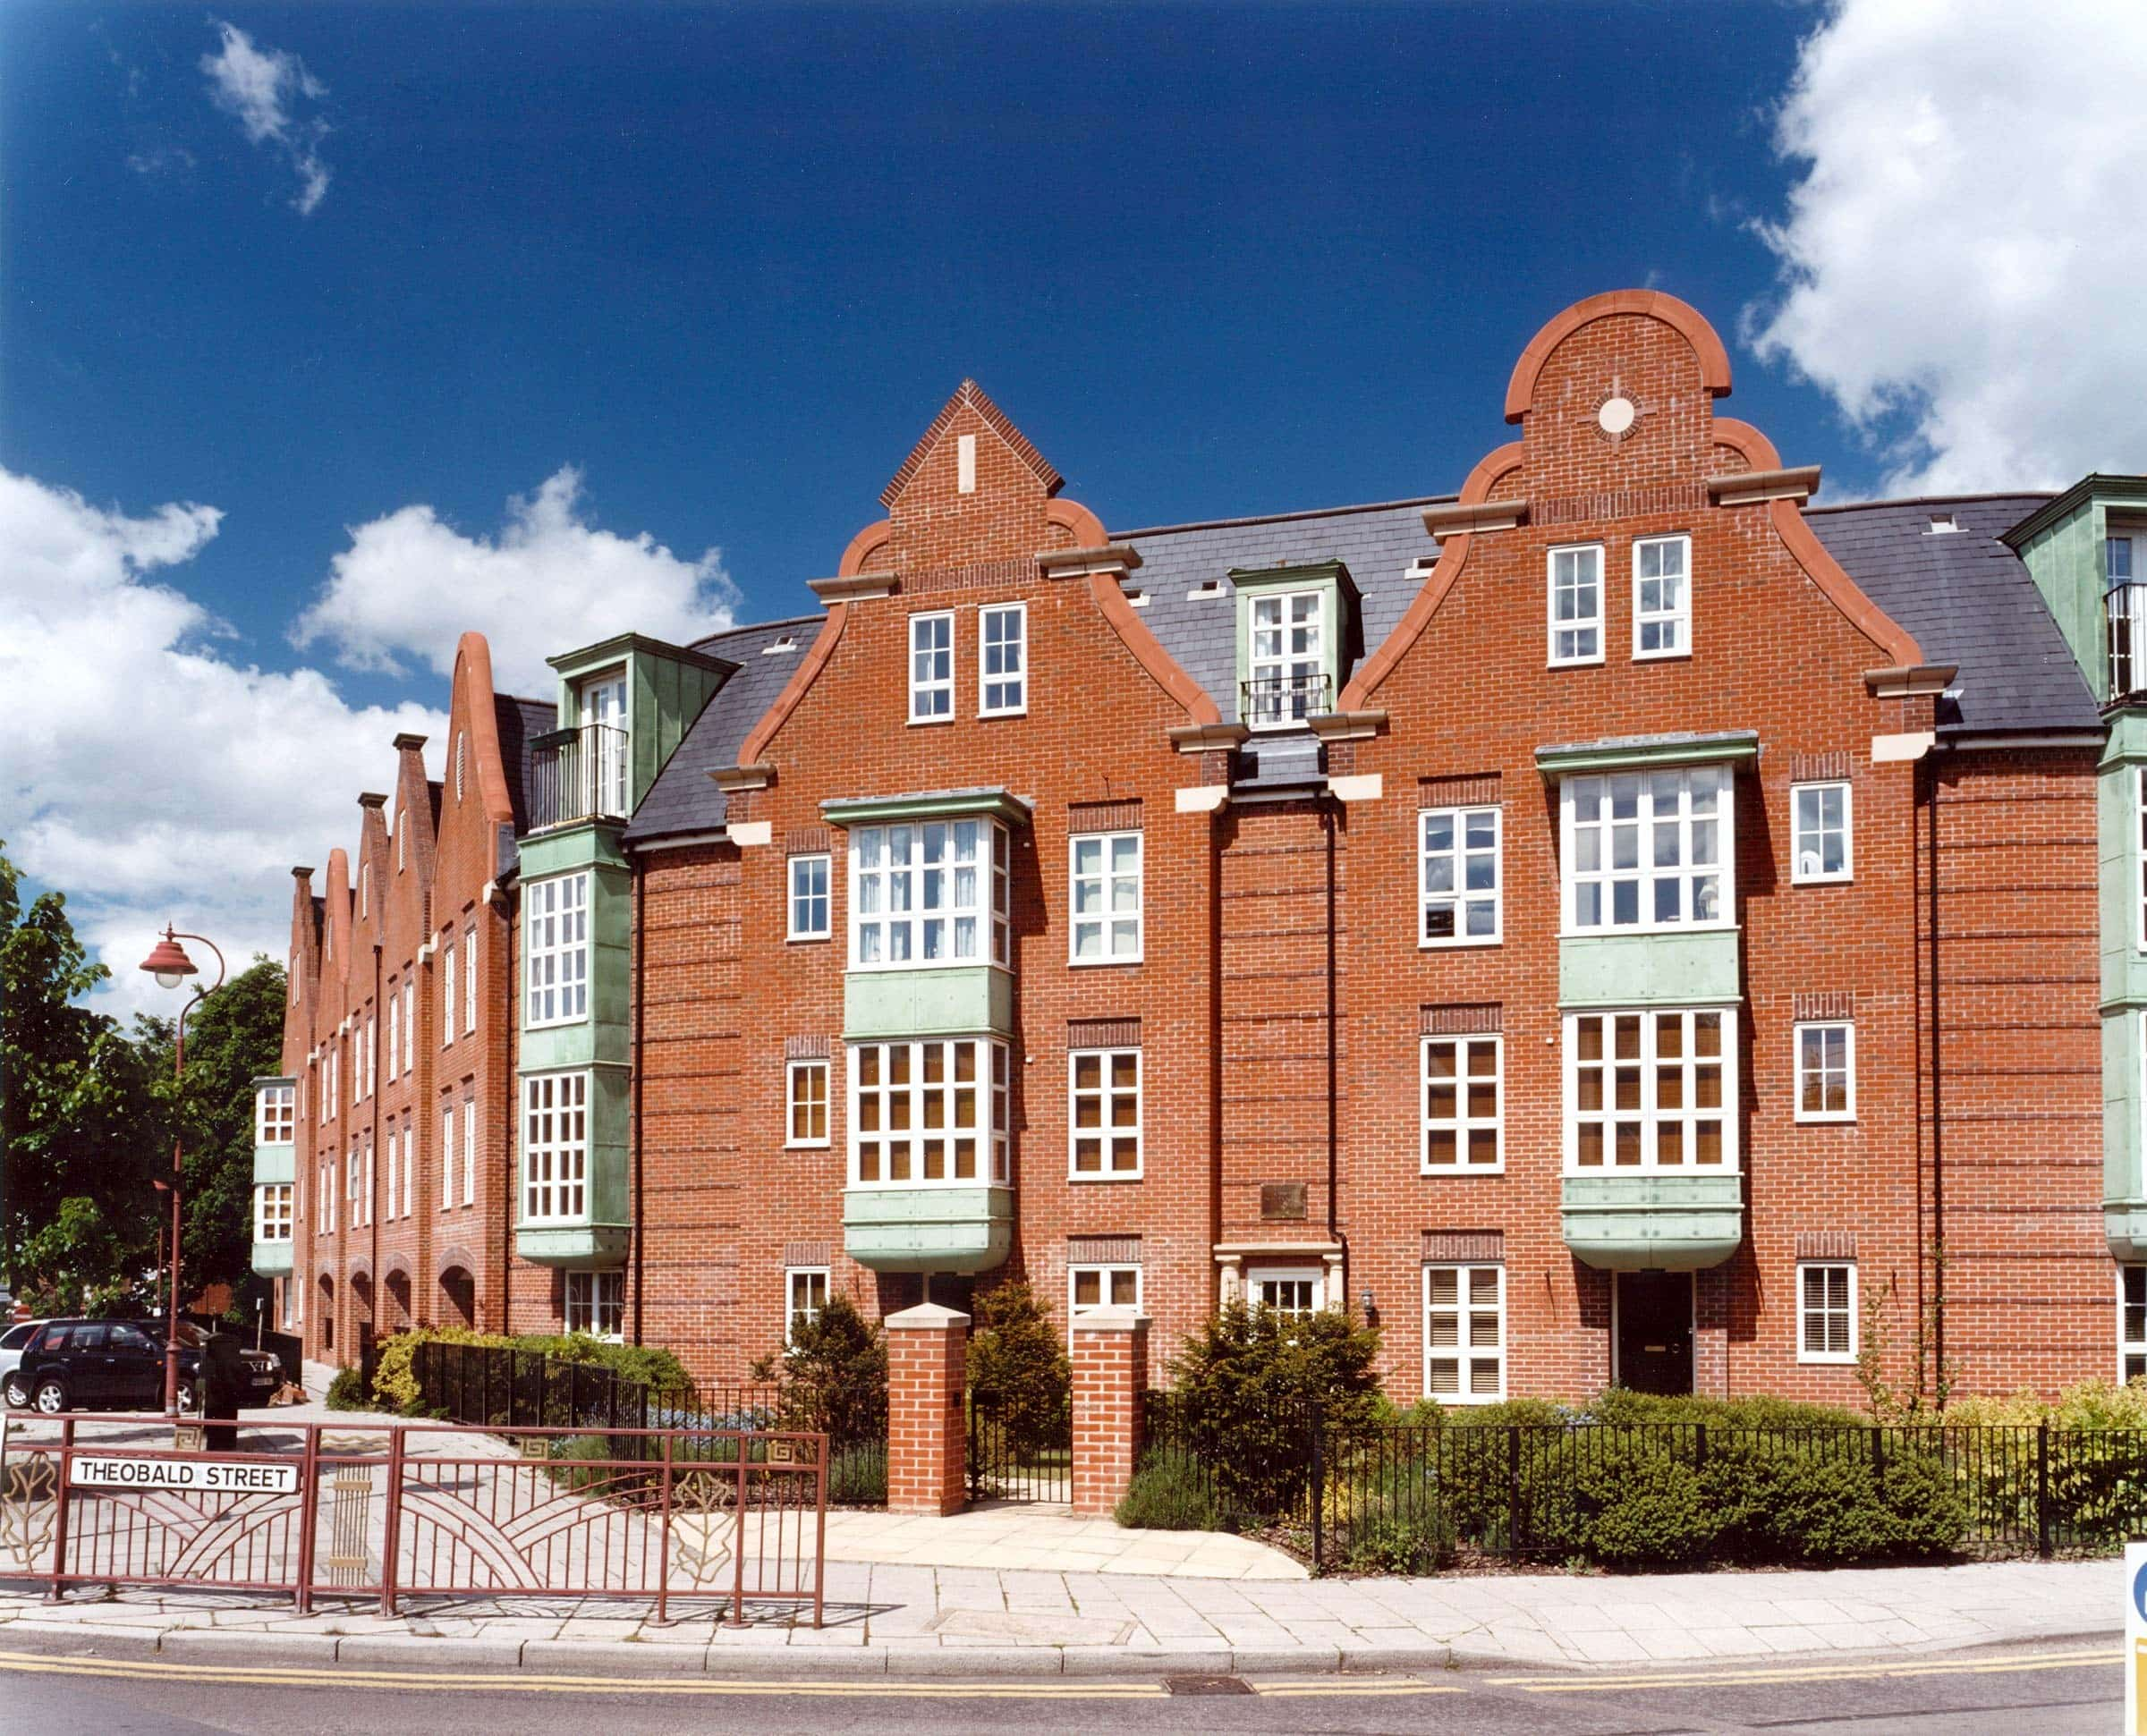 Urban development at Radlett, Hertfordshire